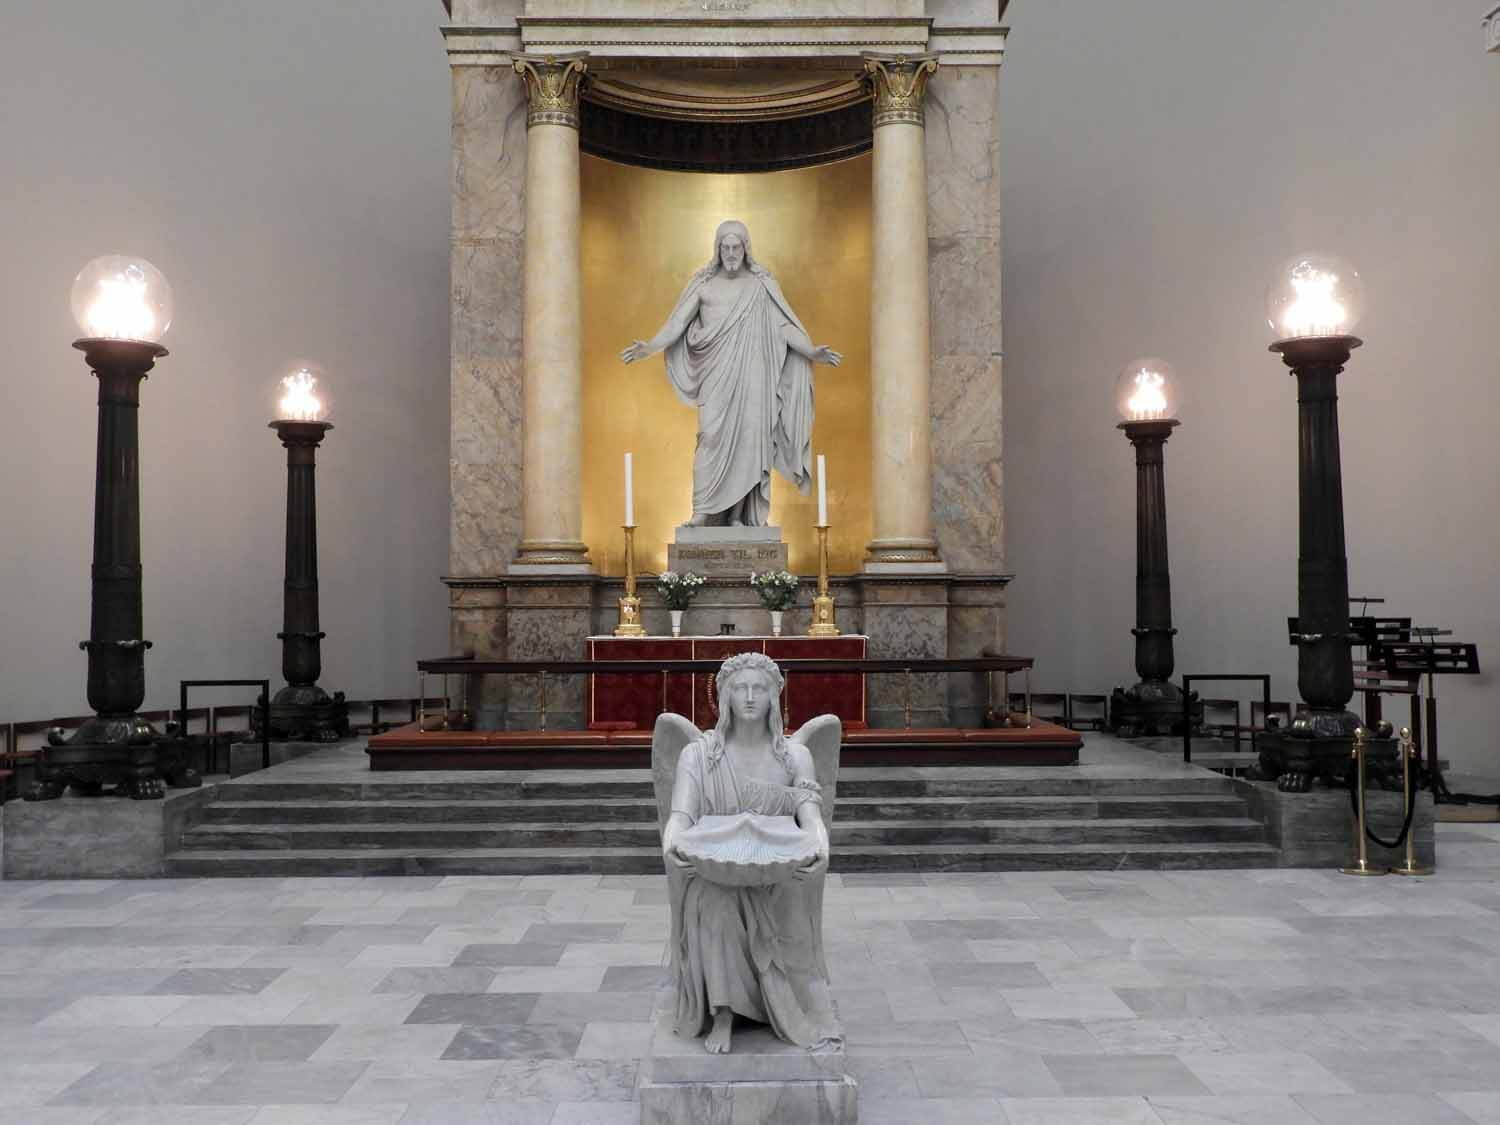 Vor Frue Kirke - Designed by one of Denmark's most notable architects, C.F. Hansen, this church serves as the National Cathedral of Denmark.  Many tourists travel to the church to behold Bertel Thorvaldsen's Christus statue and the accompanying statues of the twelve apostles